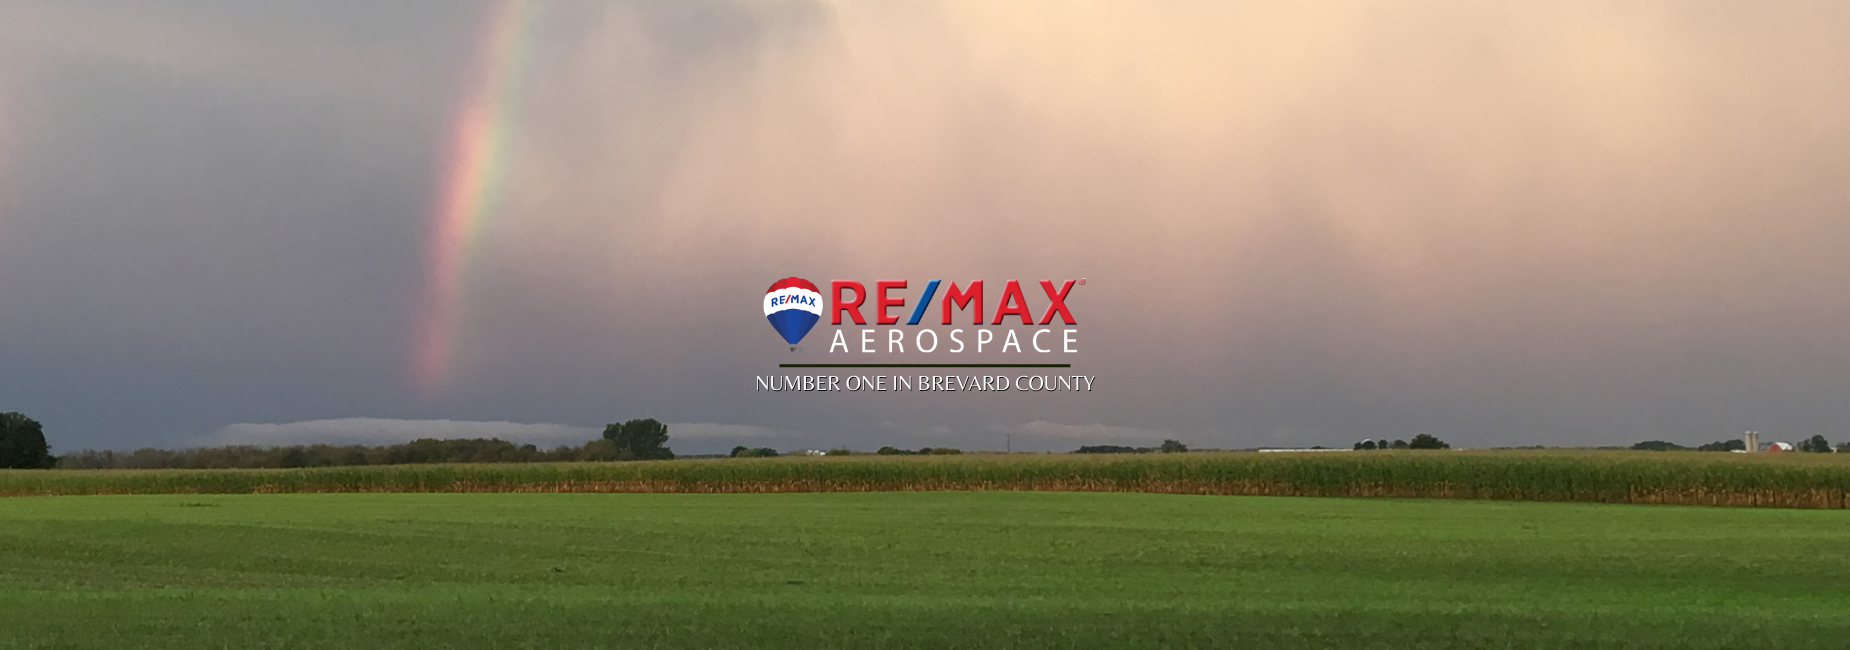 remax aerospace - number one in brevard county - Farm land